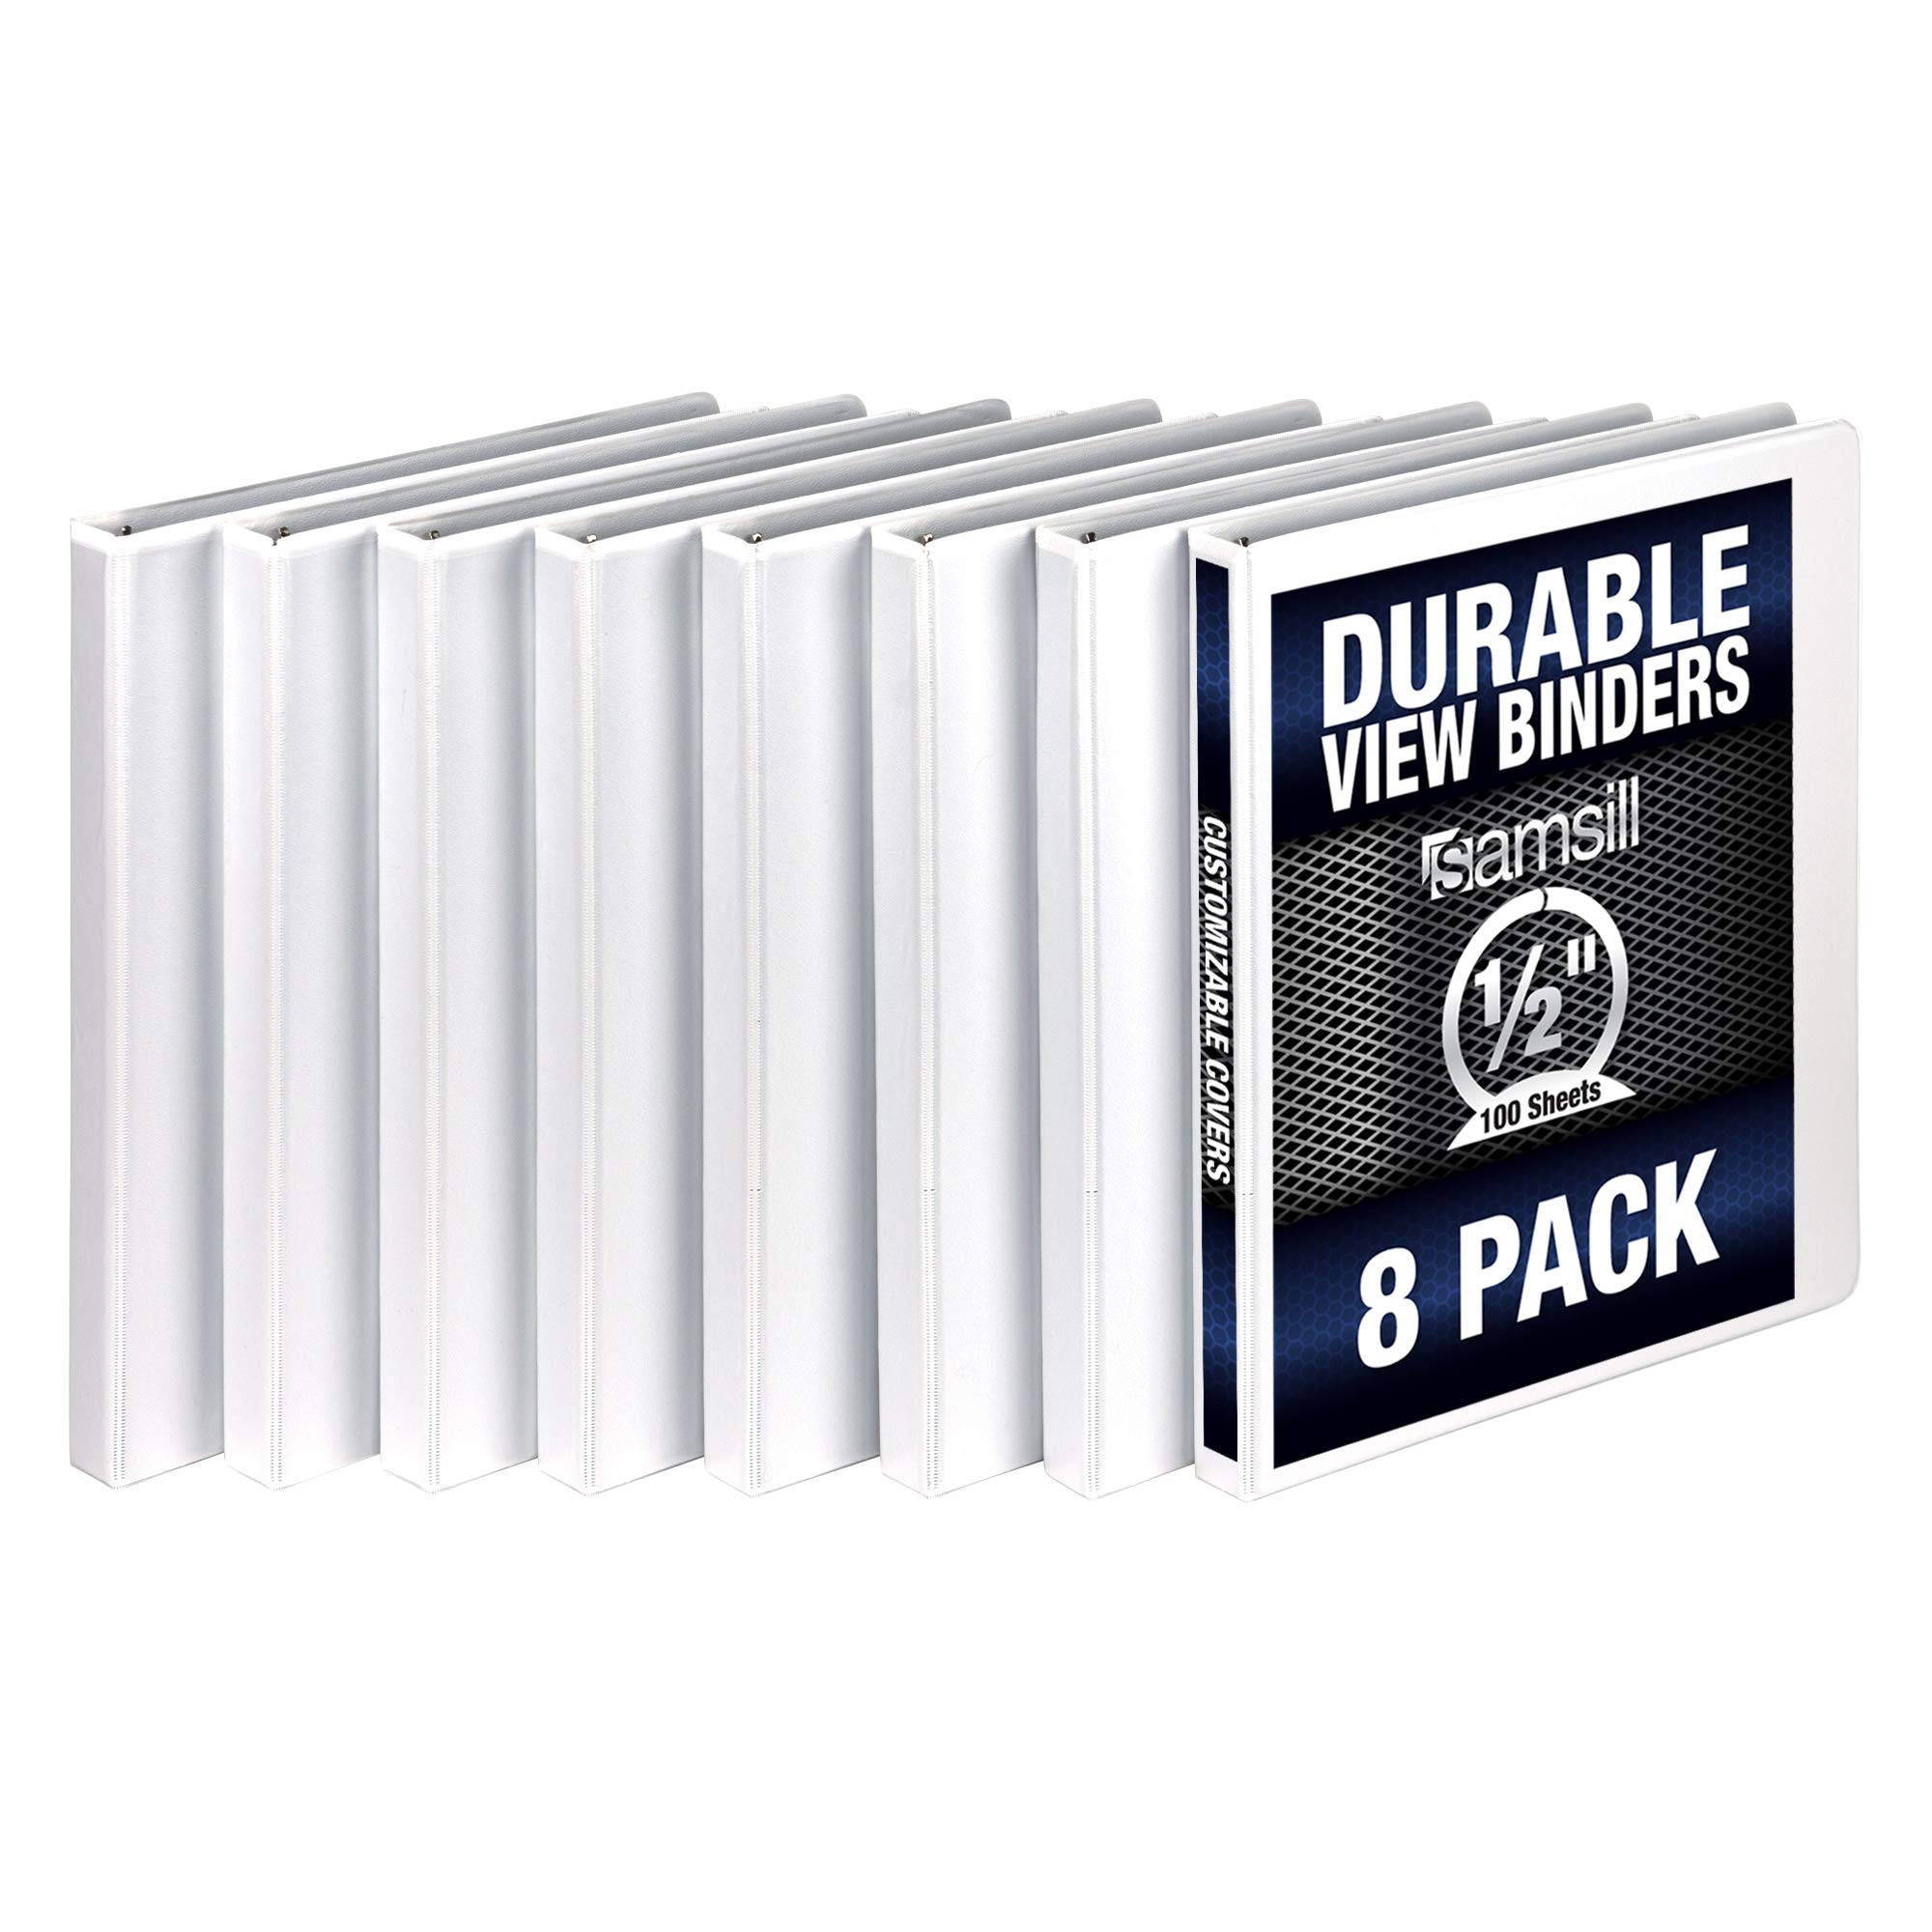 Samsill 3 Ring Durable View Binders - 8 Pack, 1/2 Inch Round Ring , Non-Stick Customizable Clear Cover, White by Samsill